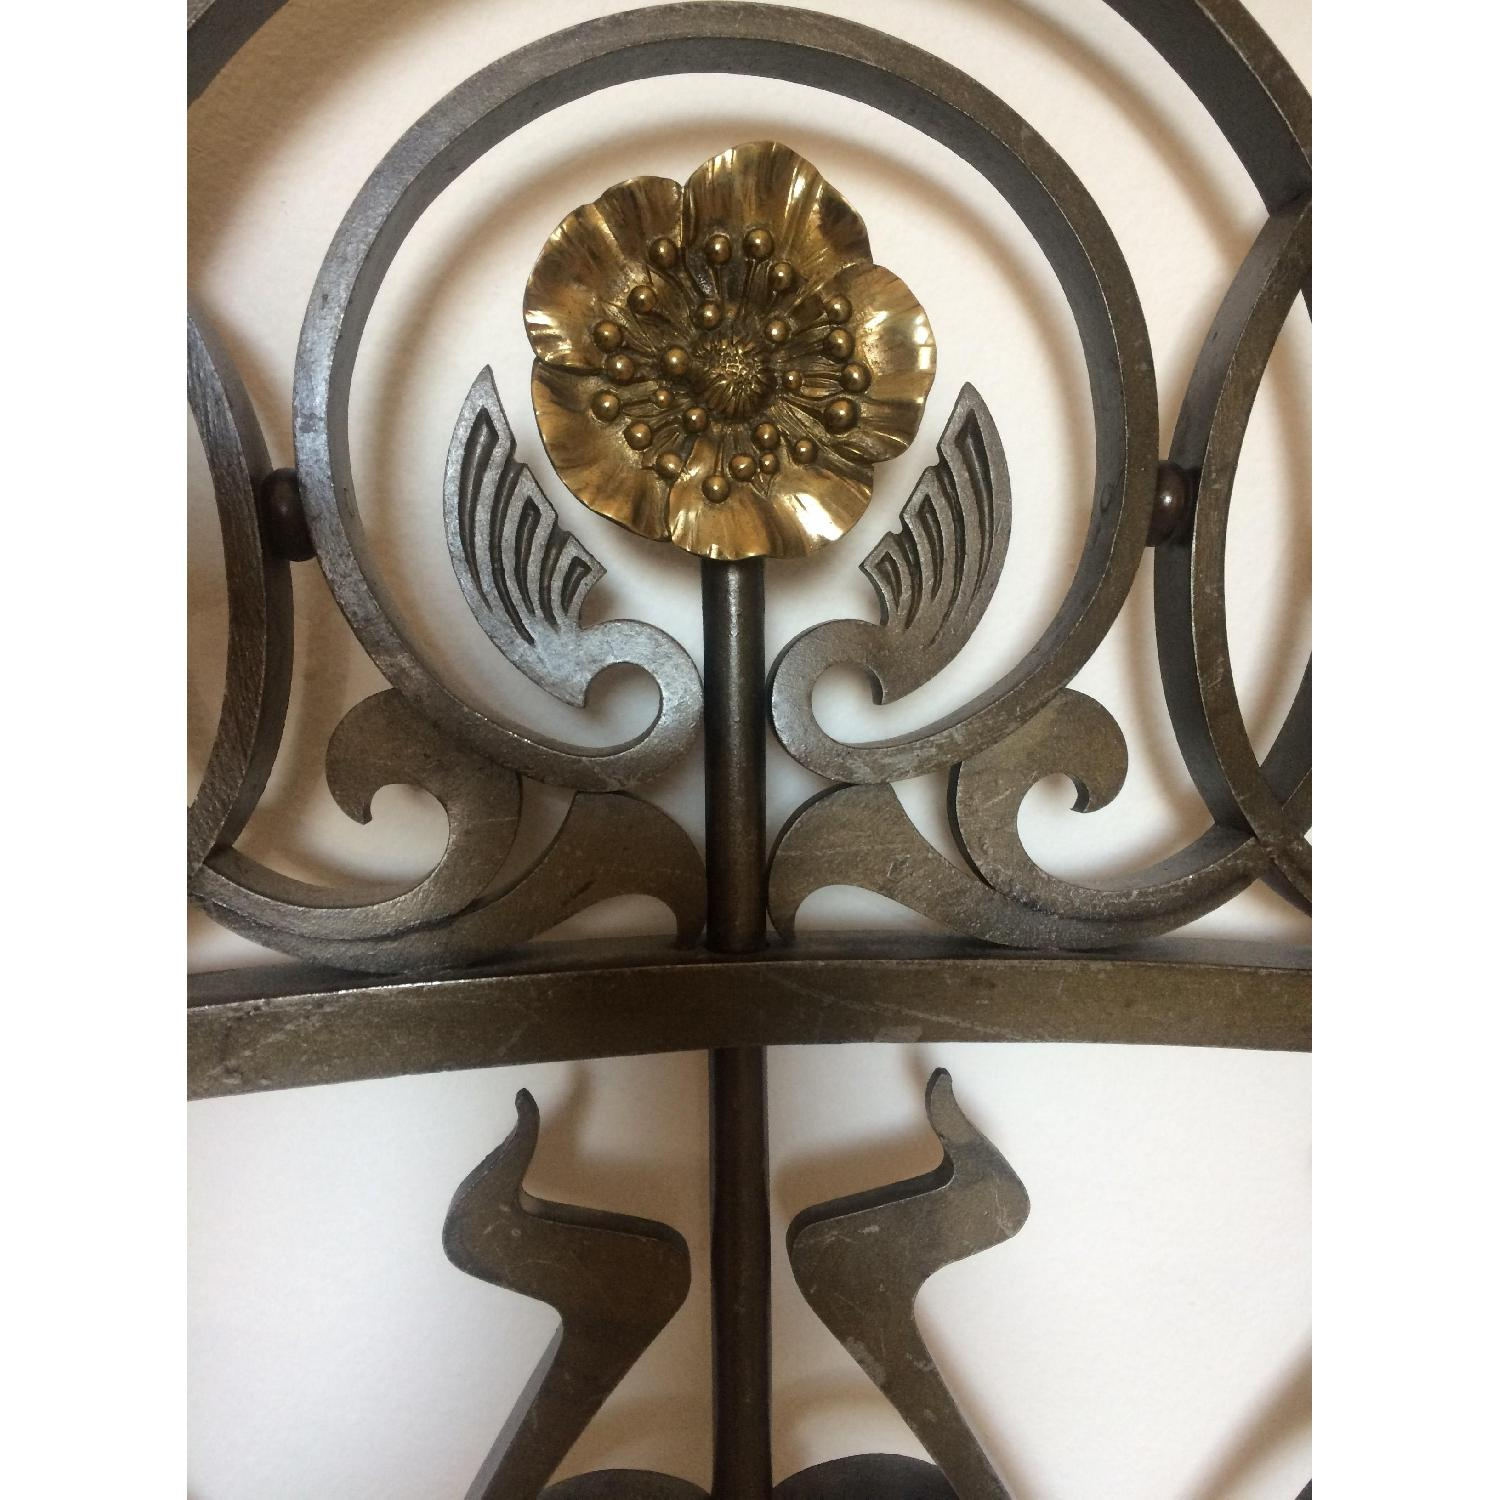 Early 20th-Century French Art Nouveau Wrought Iron and Gilt Bronze Headboard - image-4